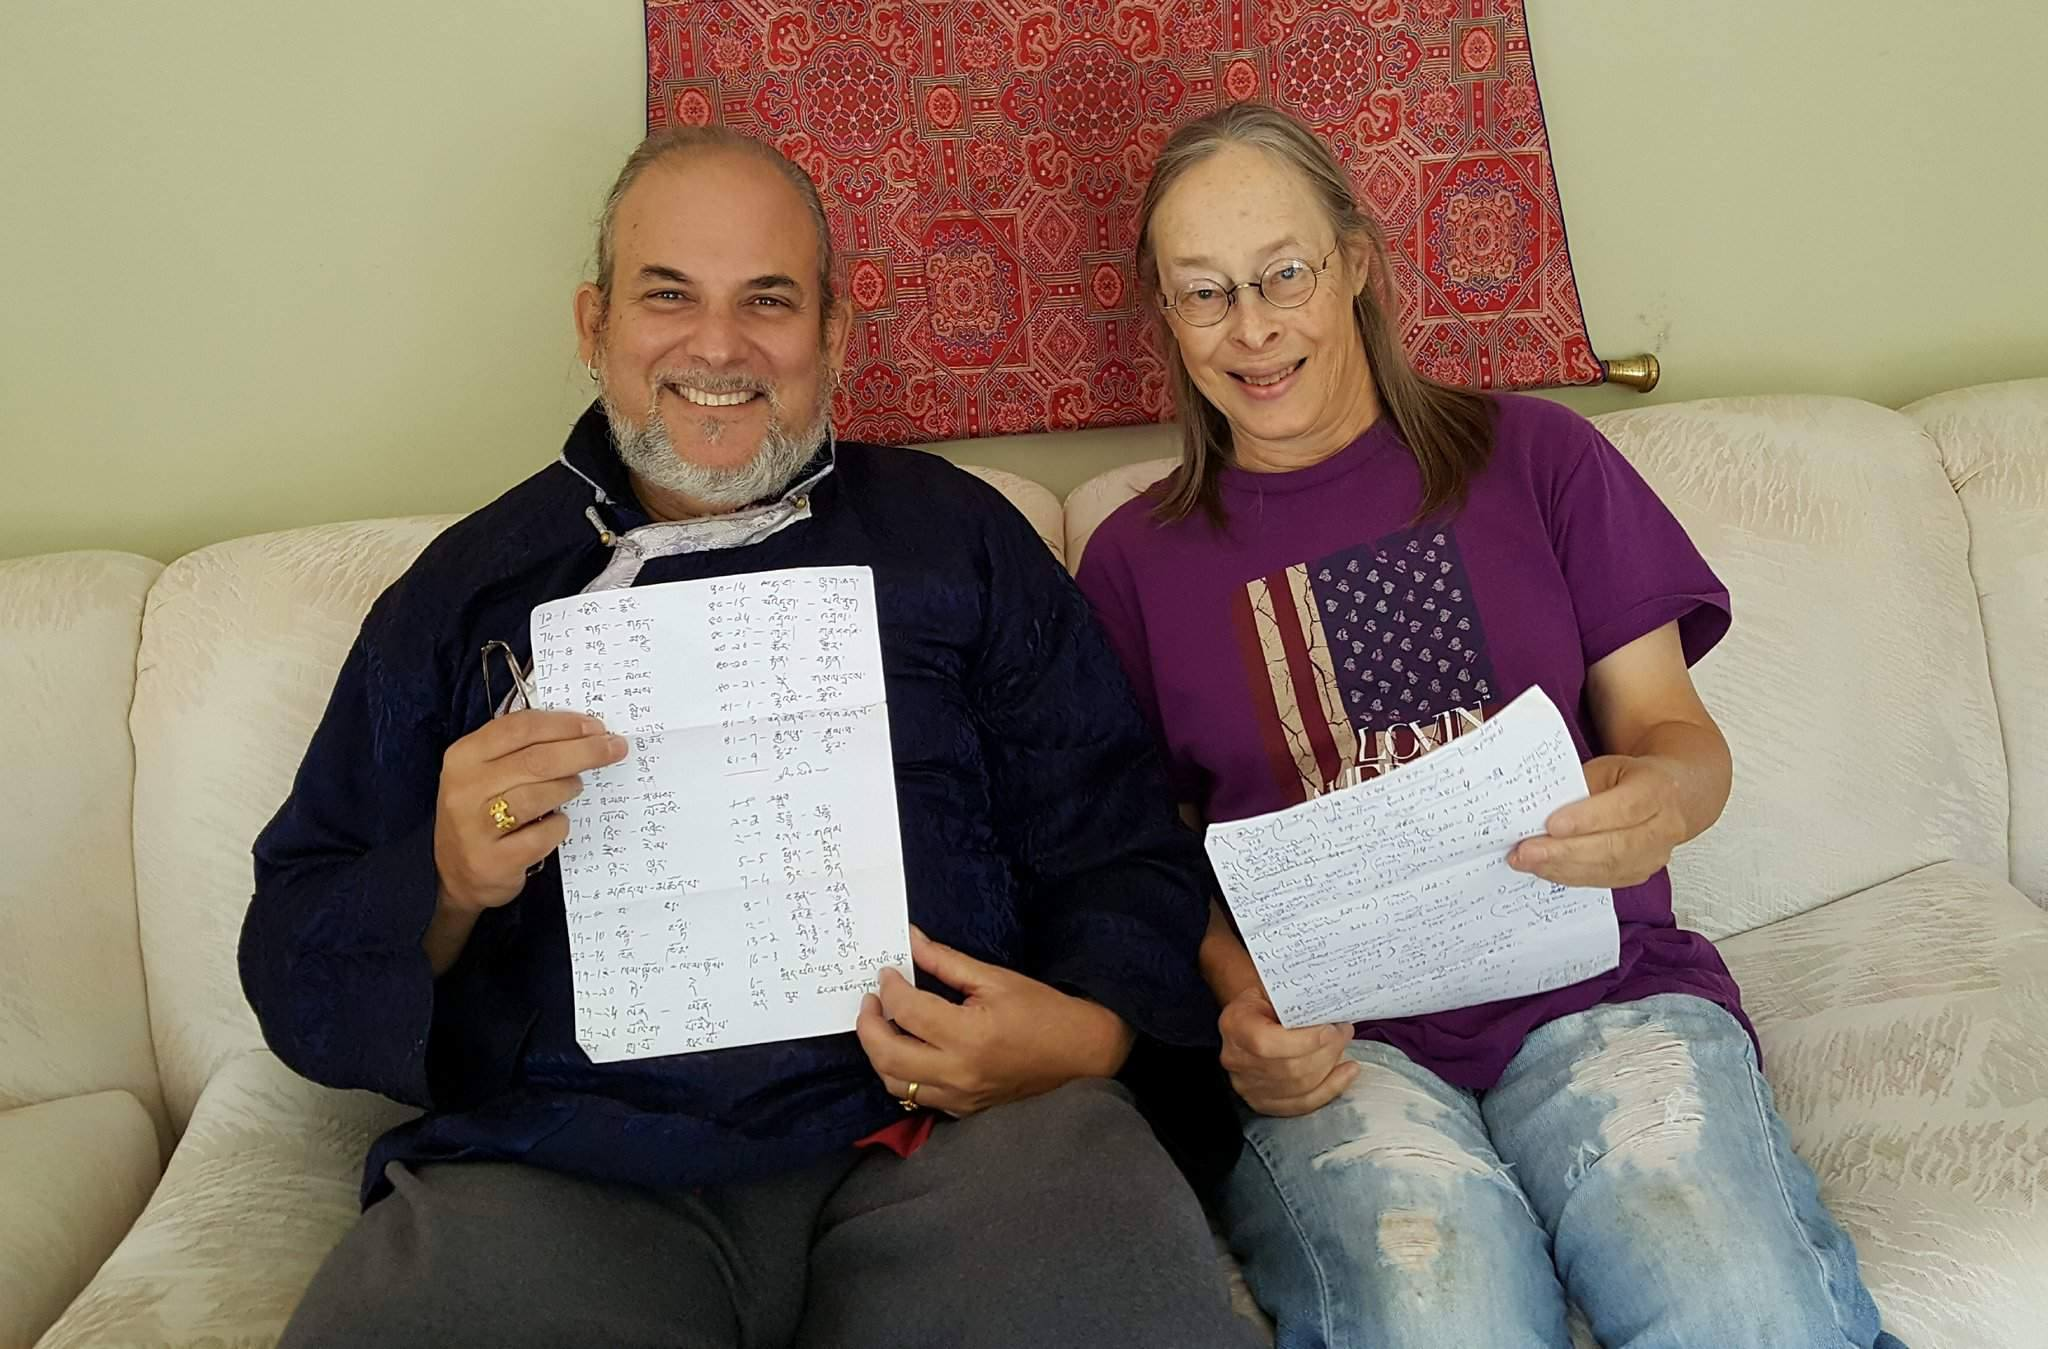 Lama Rangbar and CHeryl Lins going over corrections and ritual notes from Tulku Thadral